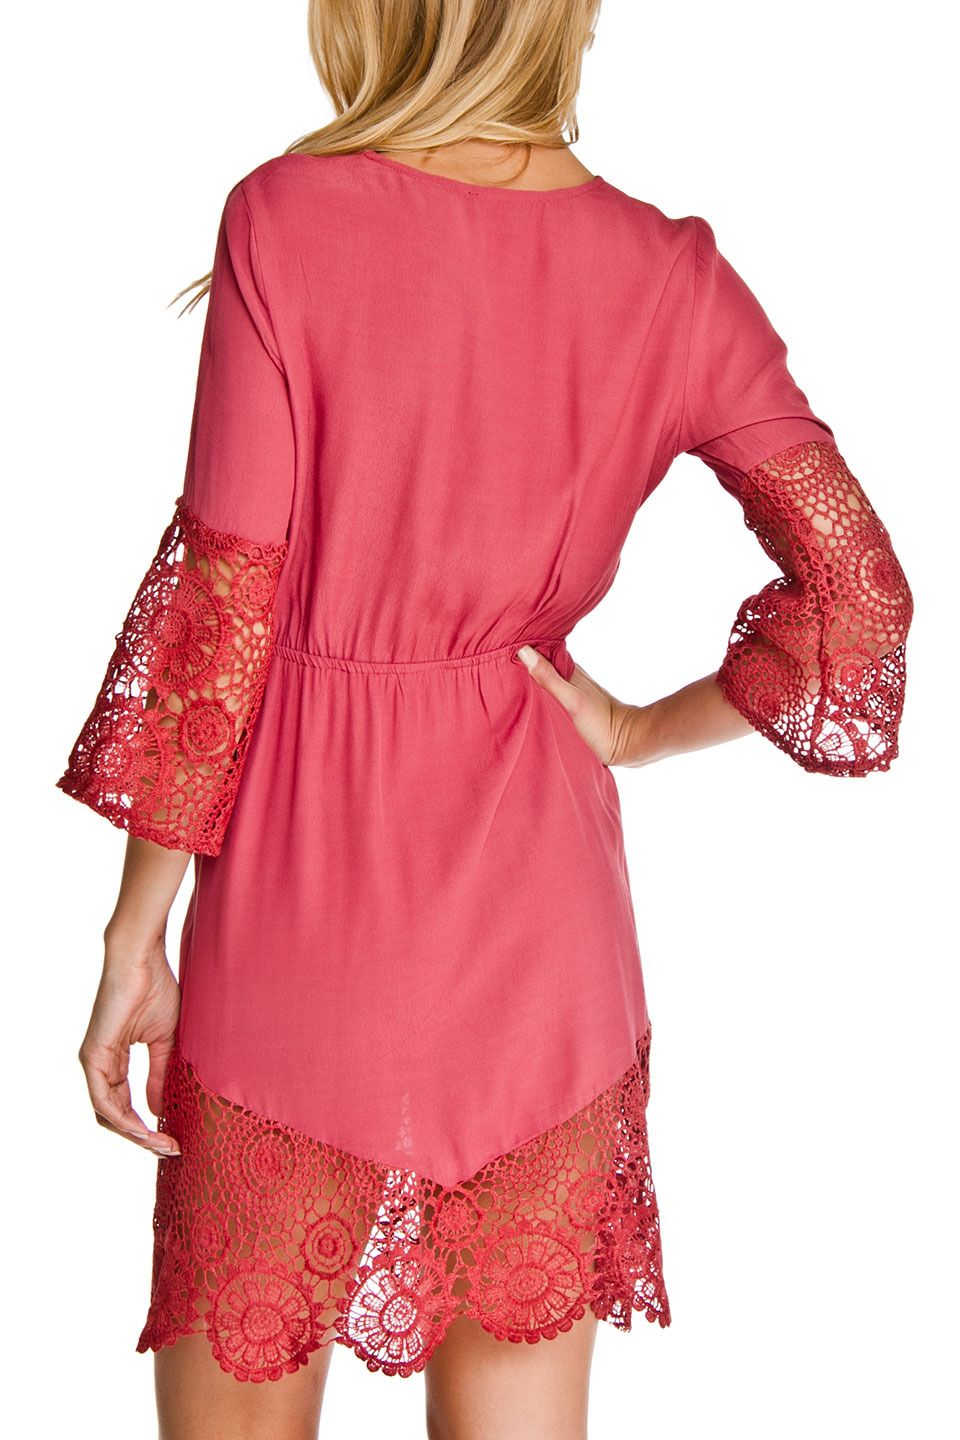 Dance and Marvel - Mabel Wrap Lace Dress in Ash Rose